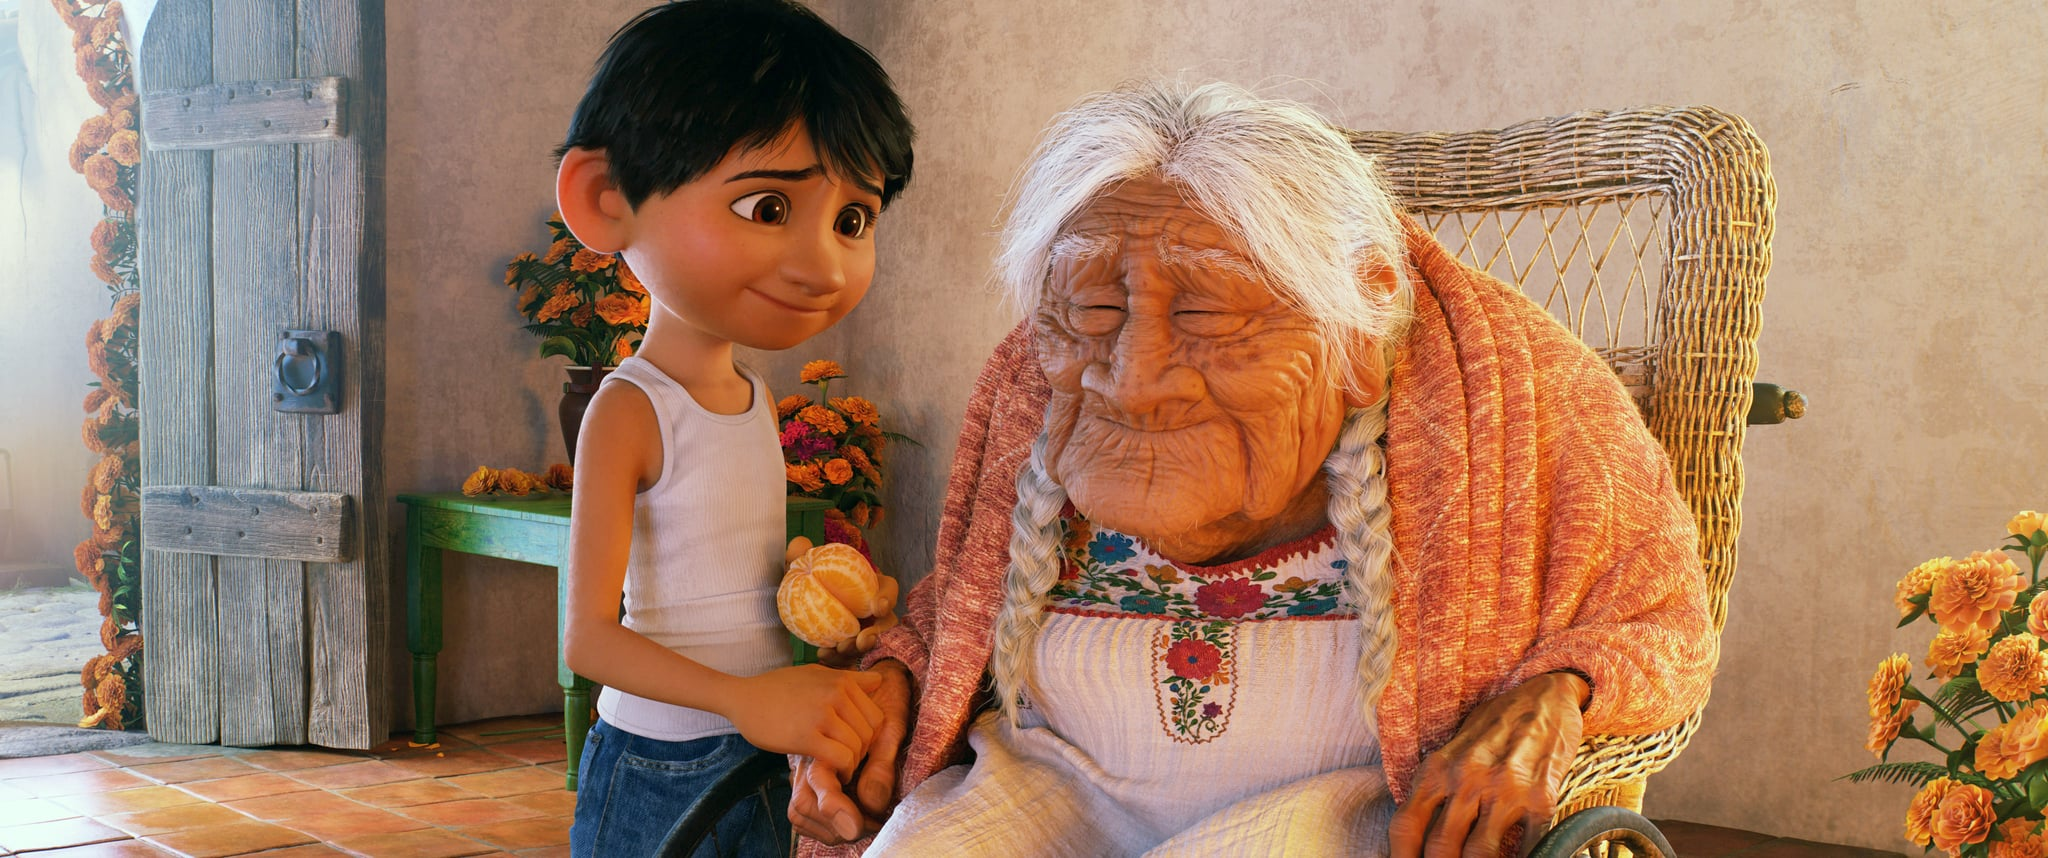 COCO, from left: Miguel (voice: Anthony Gonzalez), Mama Coco (voice: Ana Ofelia Murguia), 2017.  Walt Disney Studios Motion Pictures /Courtesy Everett Collection